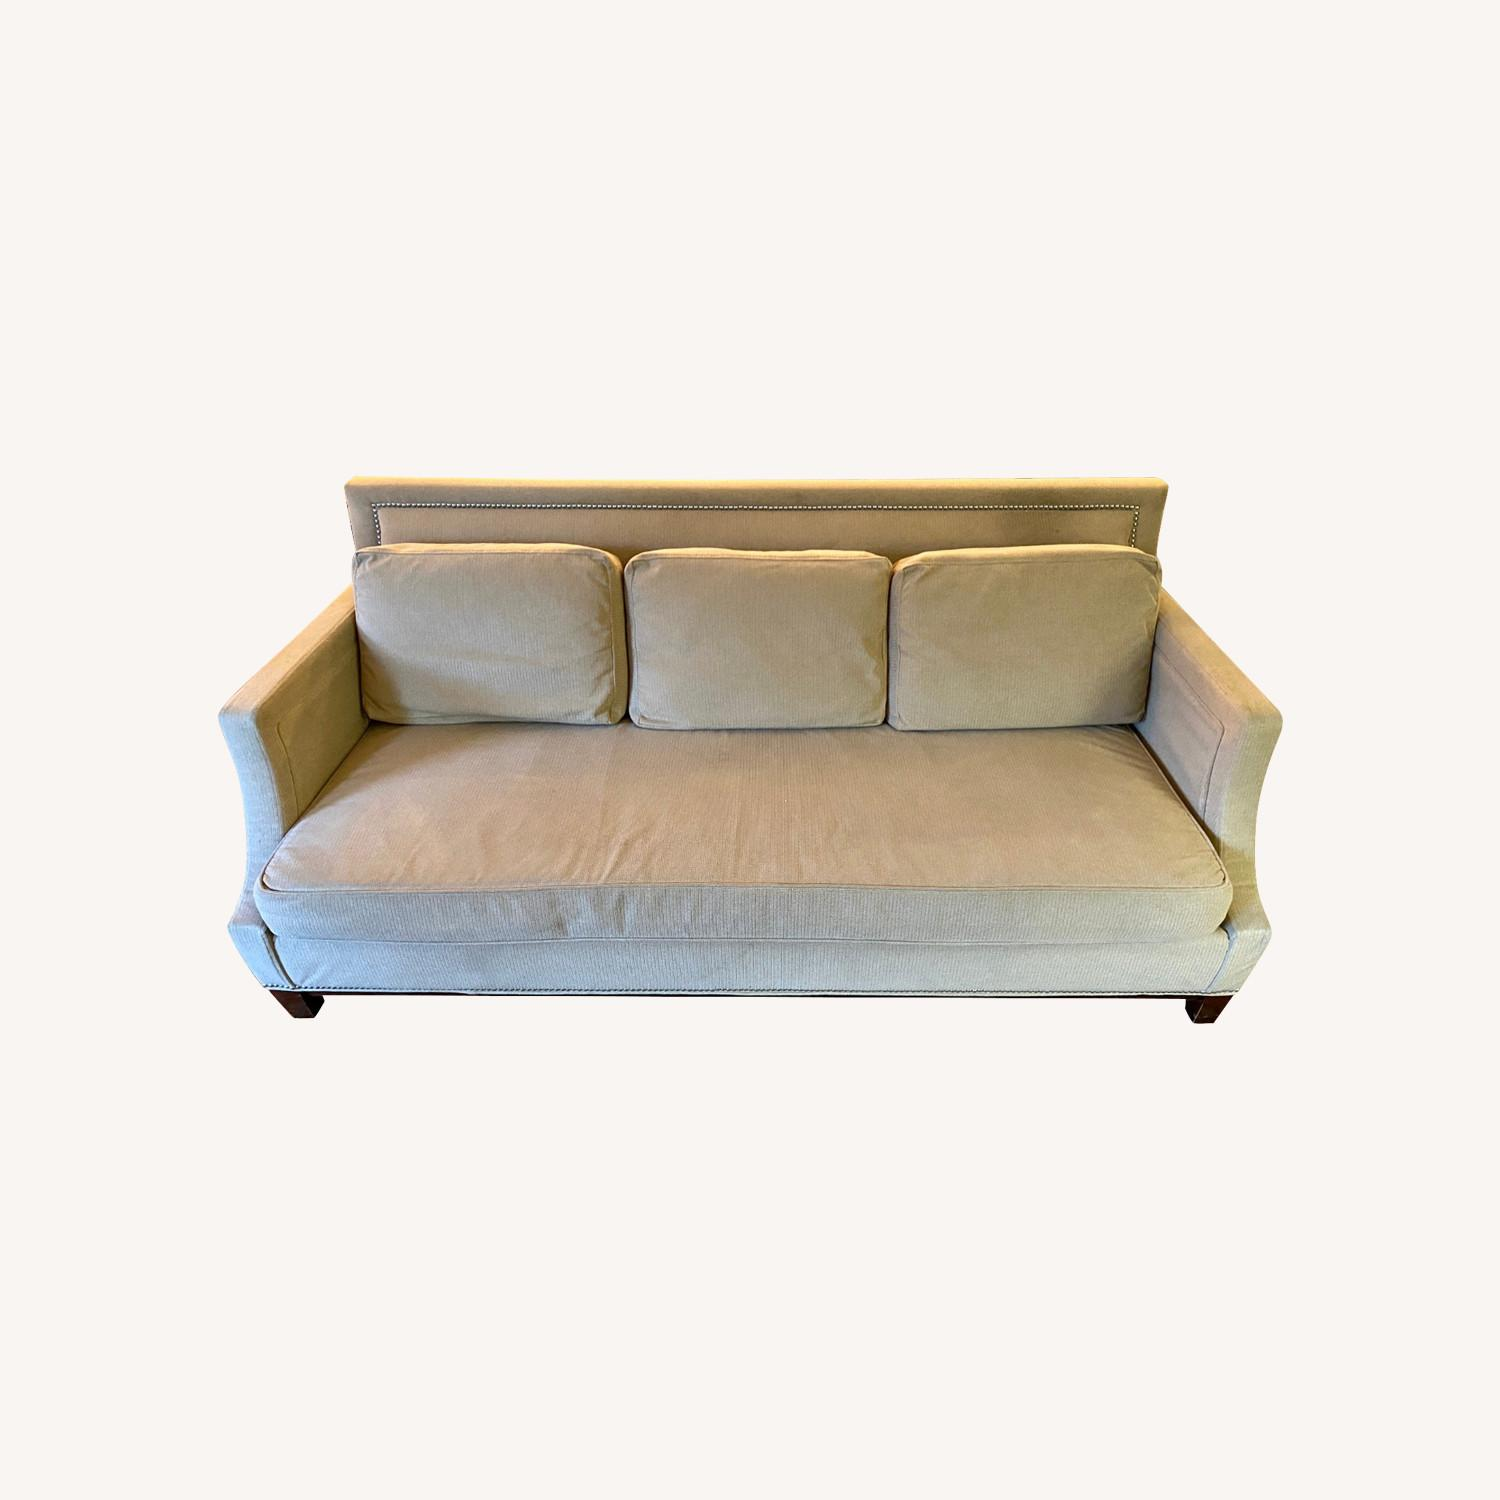 Robert Allen Design Cooper Sofa in Tan - image-0